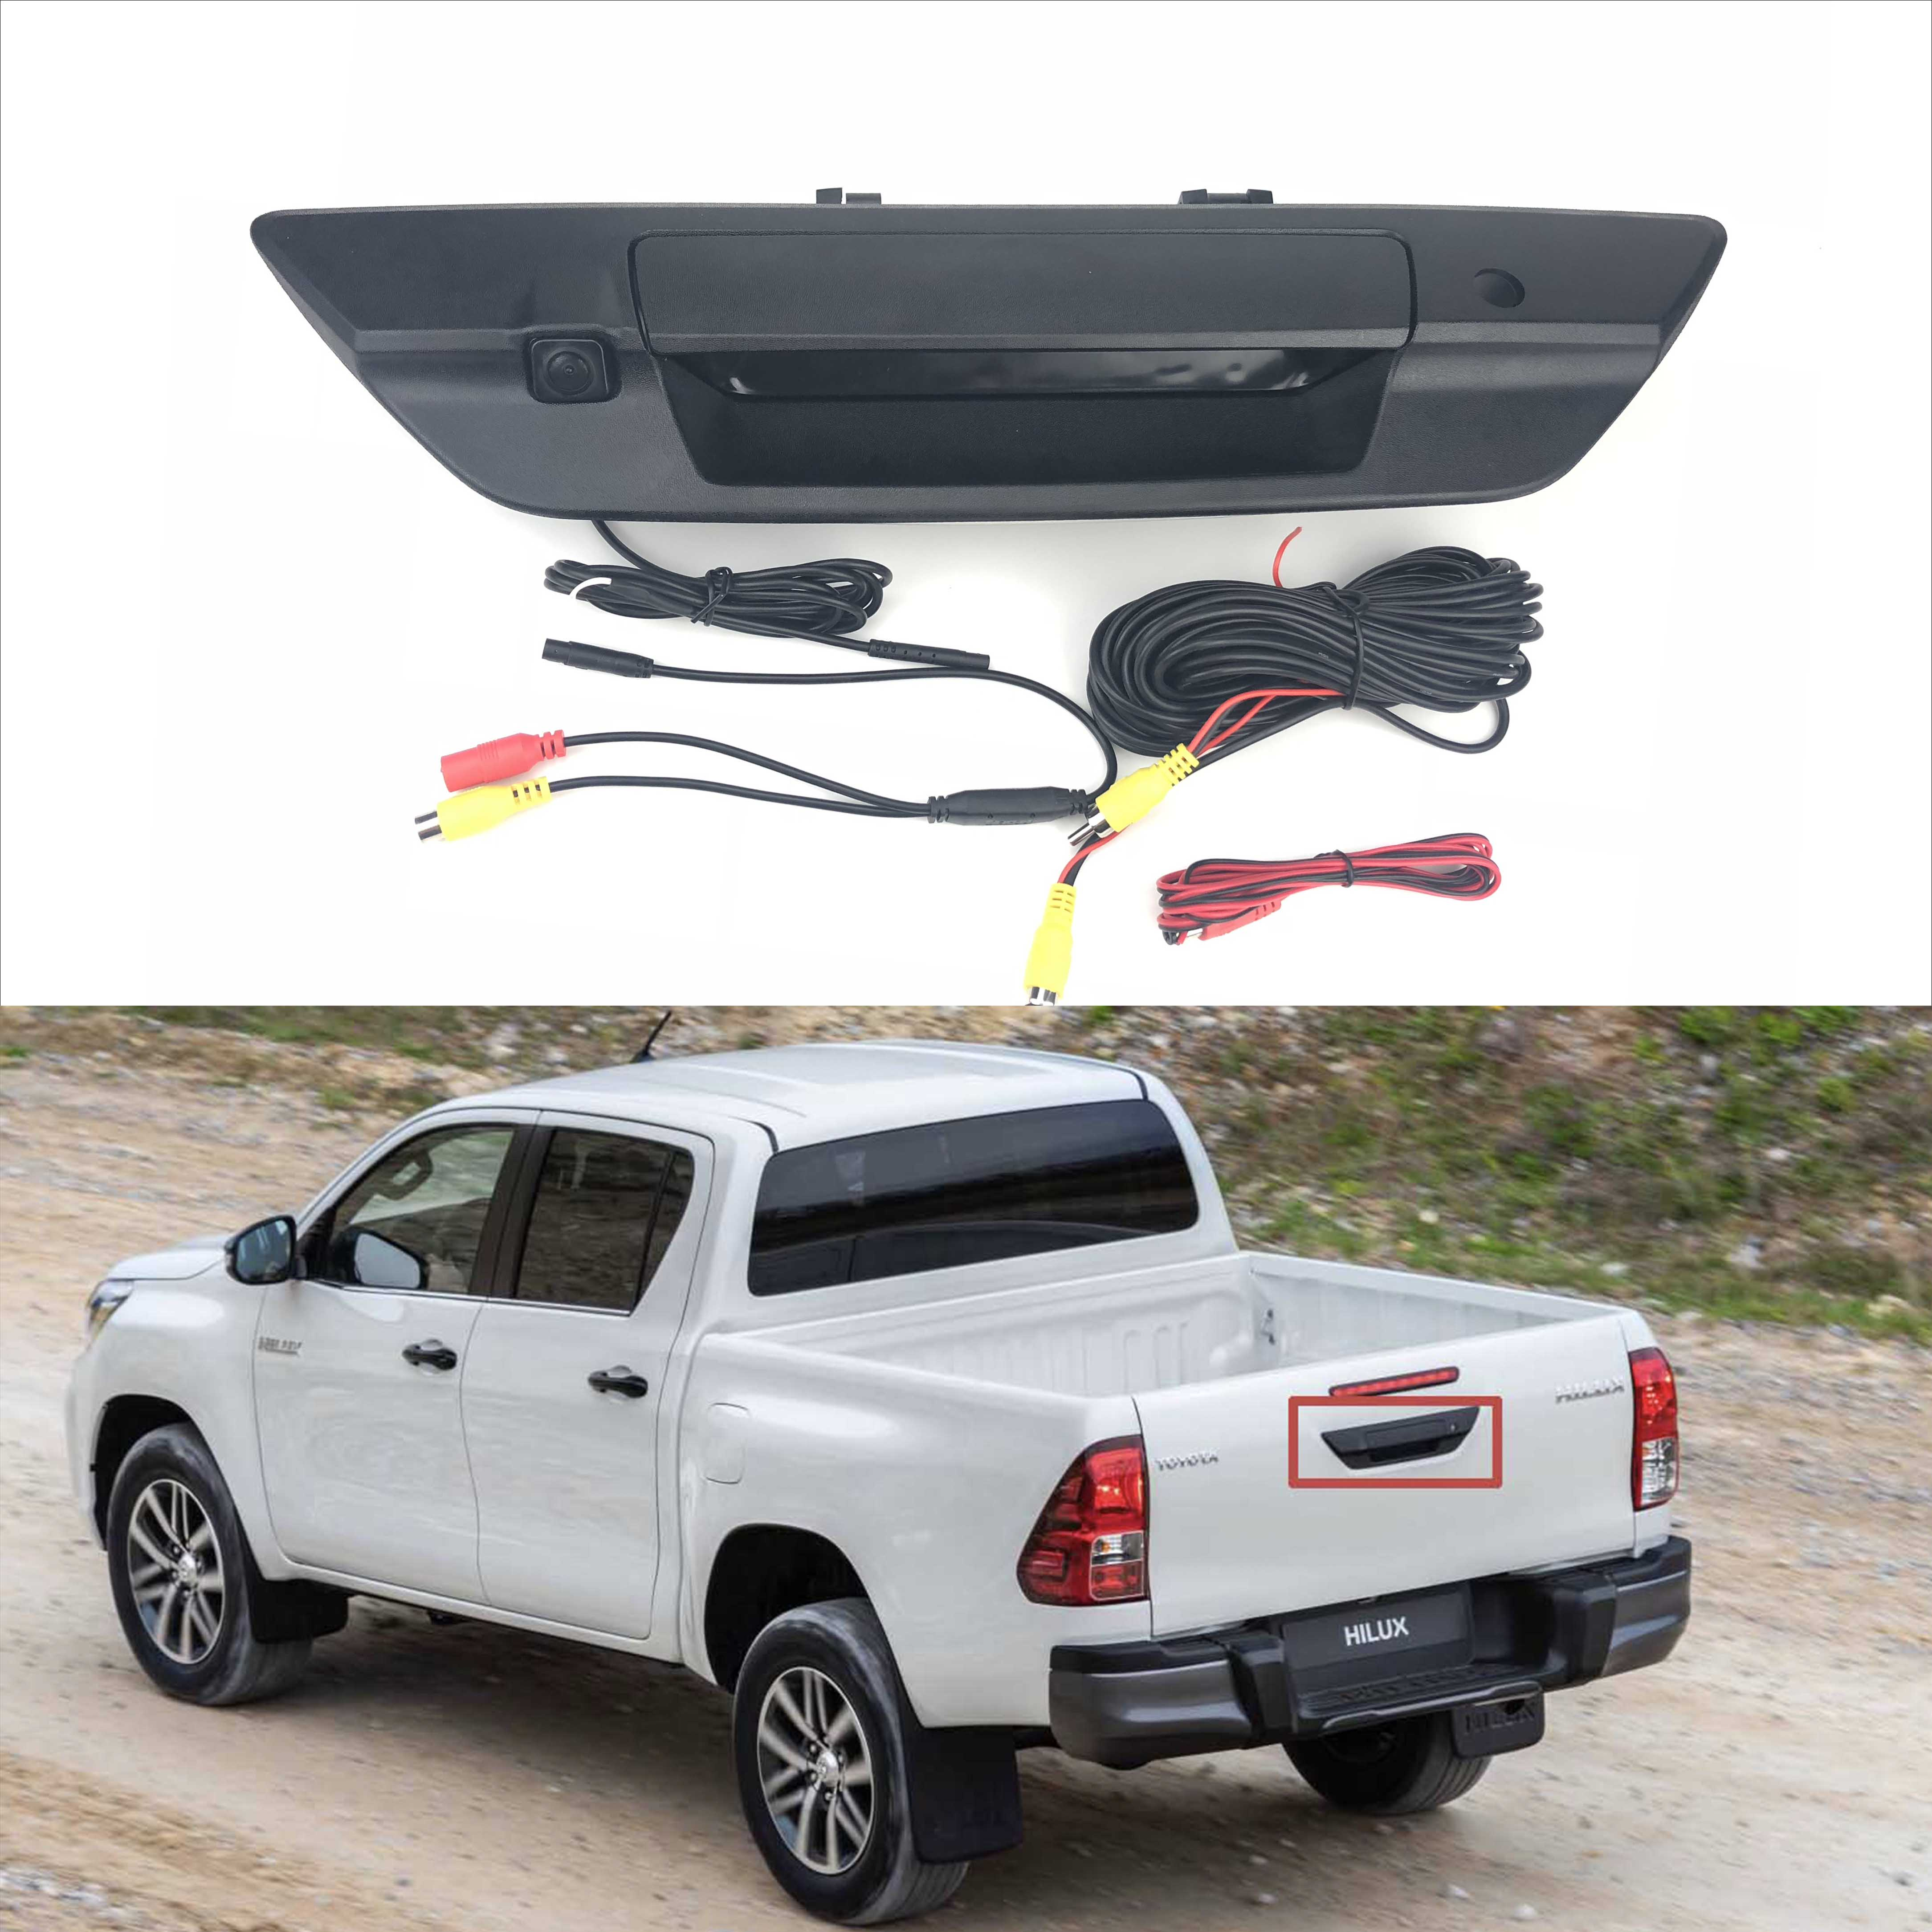 JIAYITIAN Tailgate Handle Camera For Toyota Hilux New hilux 2018 2019 2020 CCD HD Backup RearView CAM